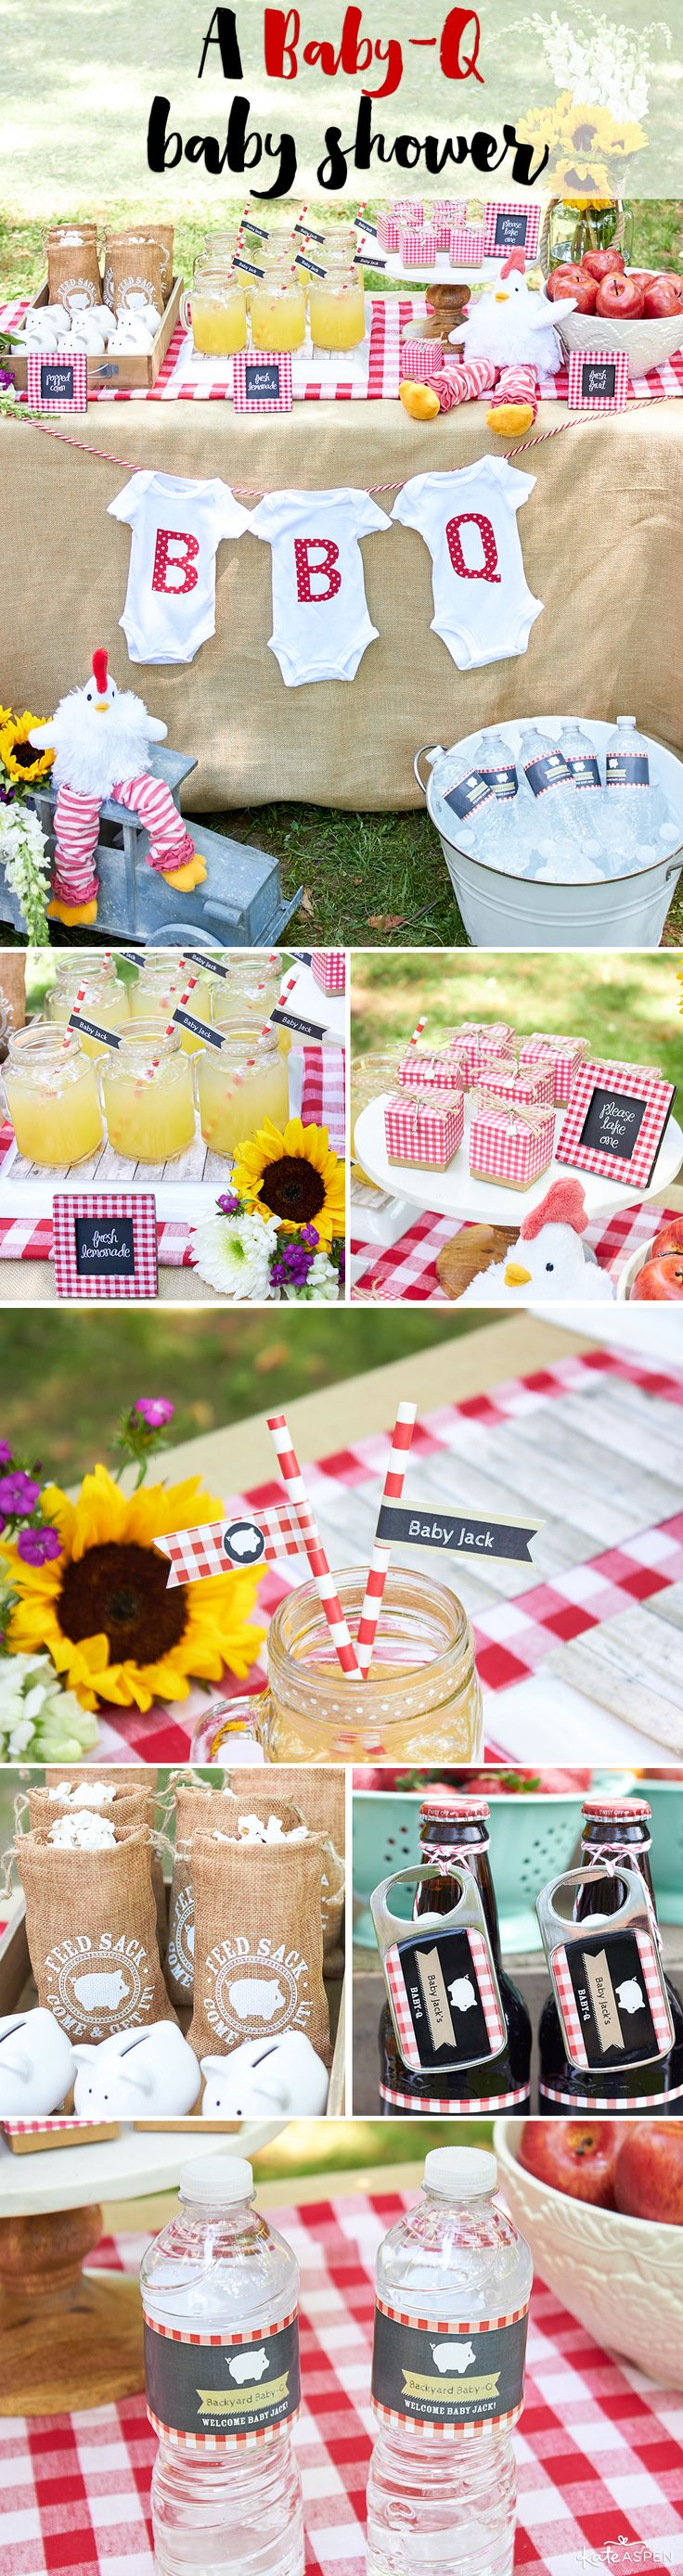 5755 best Baby Shower images on Pinterest